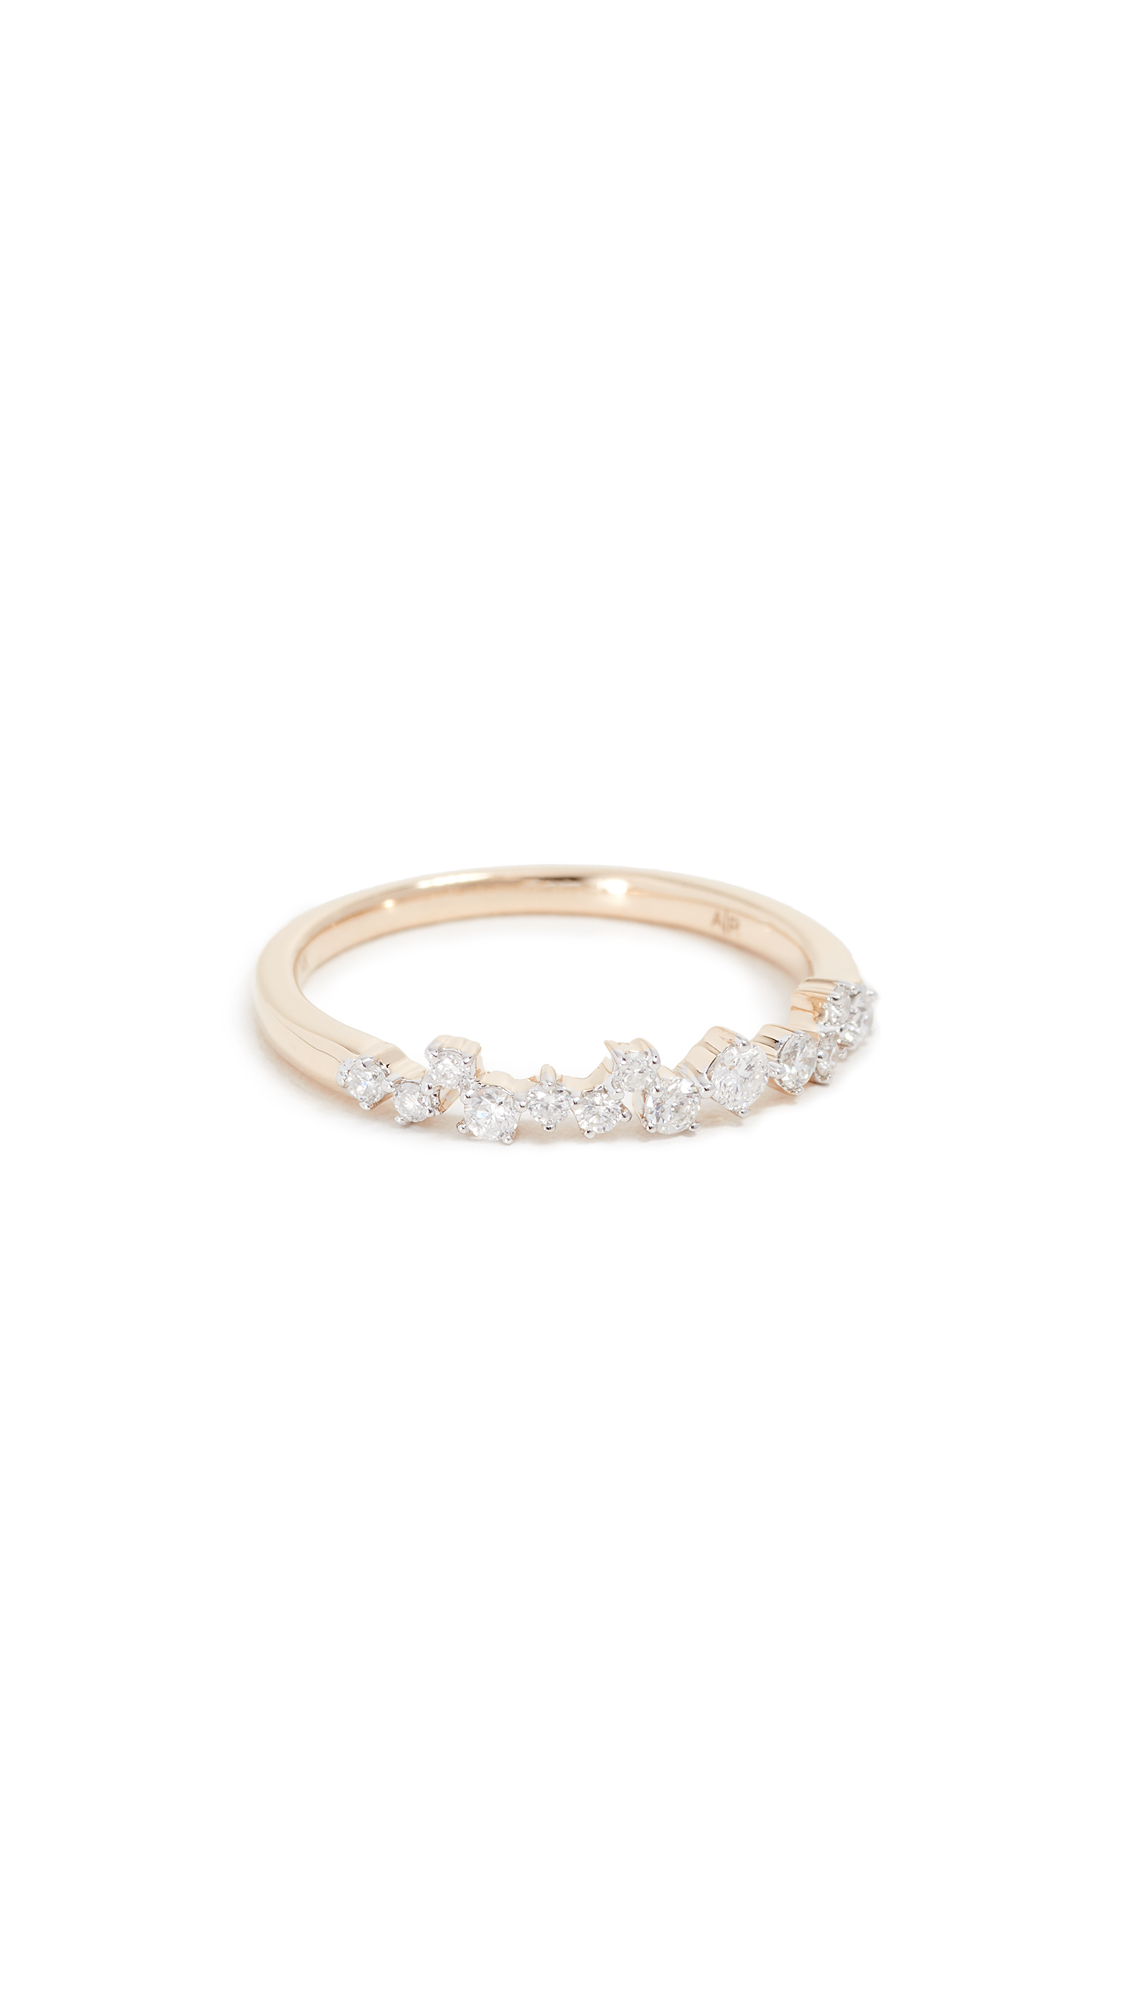 ADINA REYTER 14K EXTENDED SCATTERED DIAMOND RING